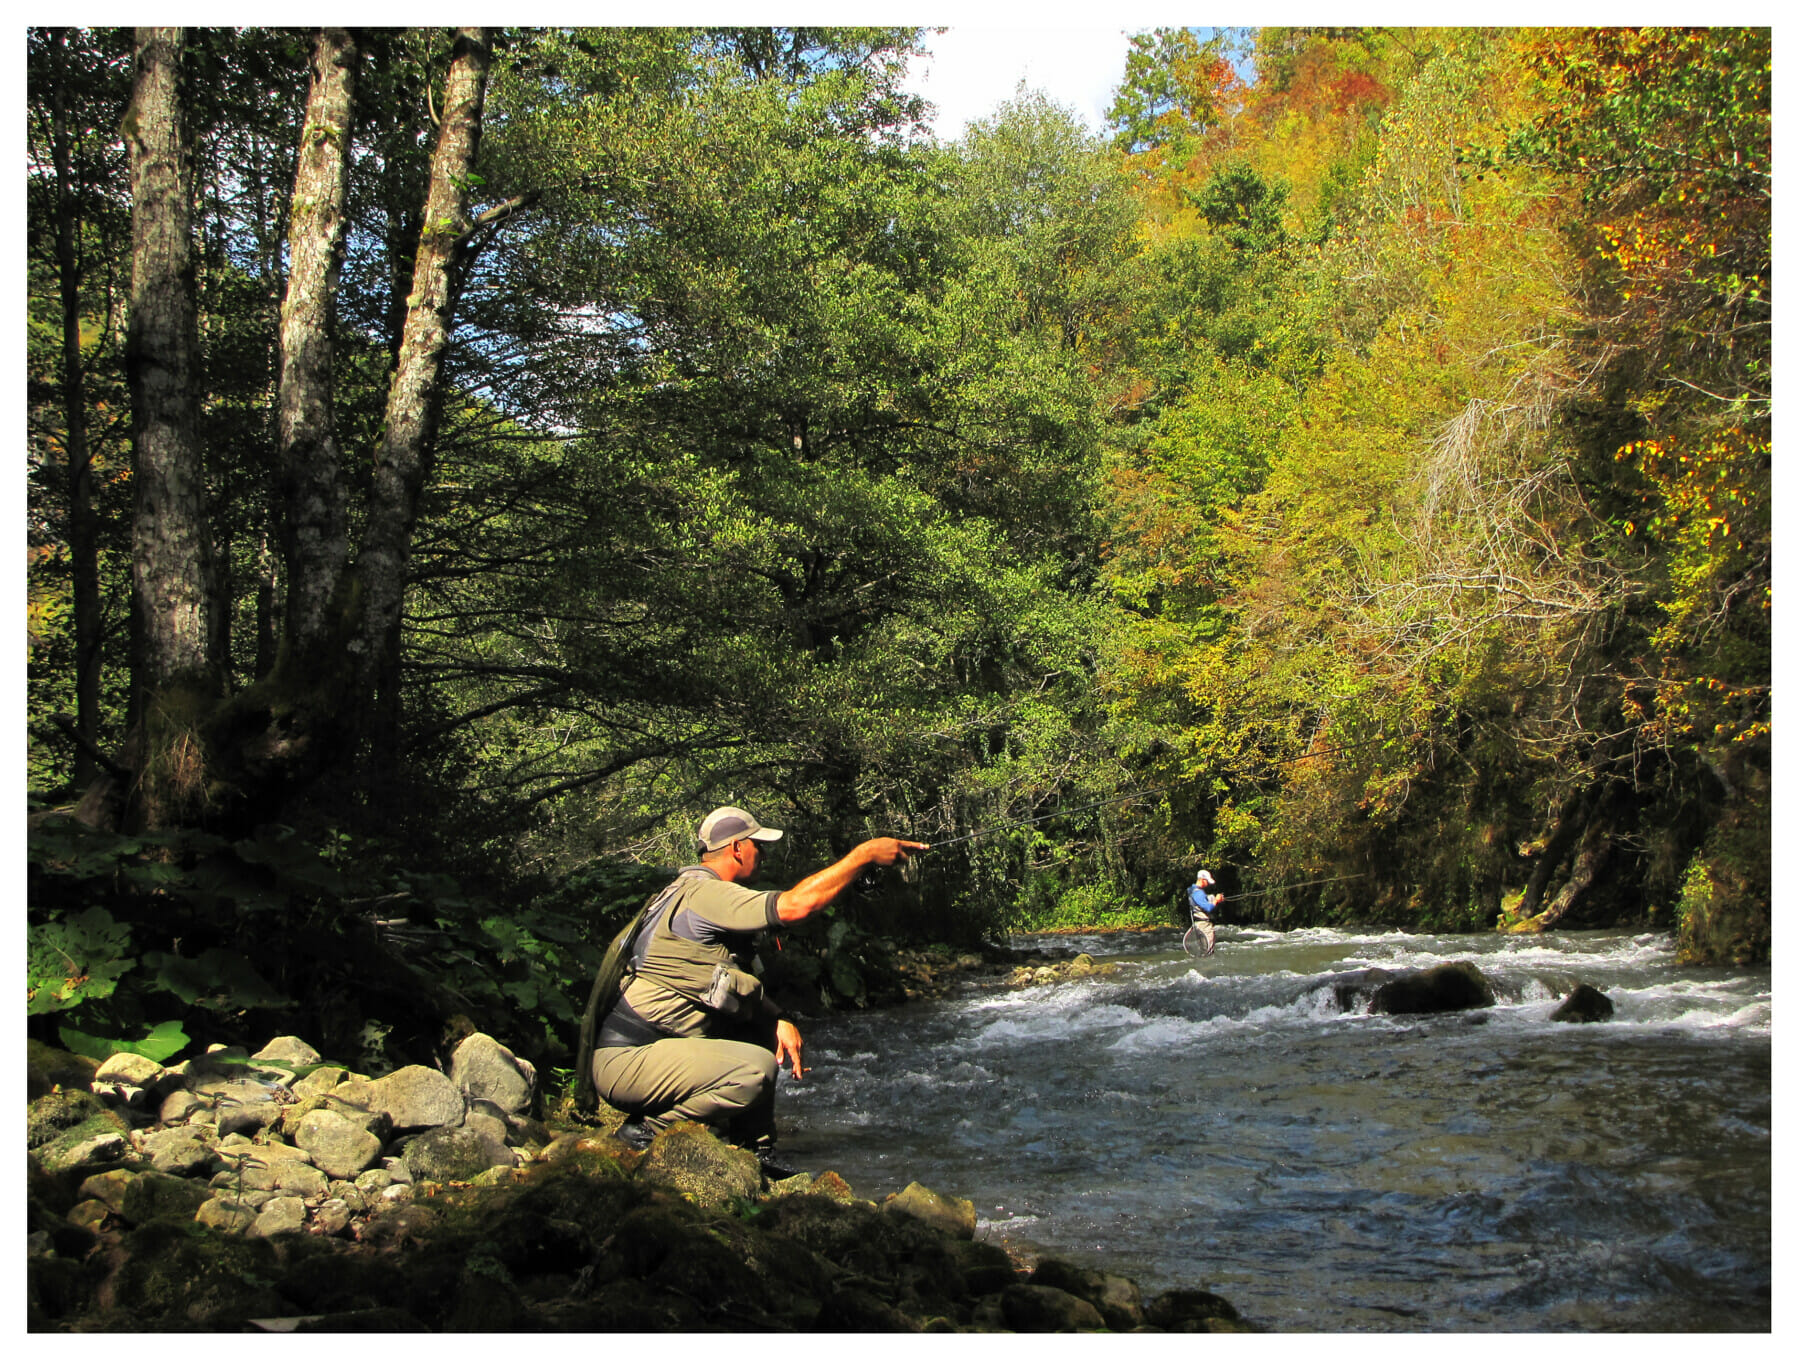 Nature and ambient for fly fishing, Ćehotina river